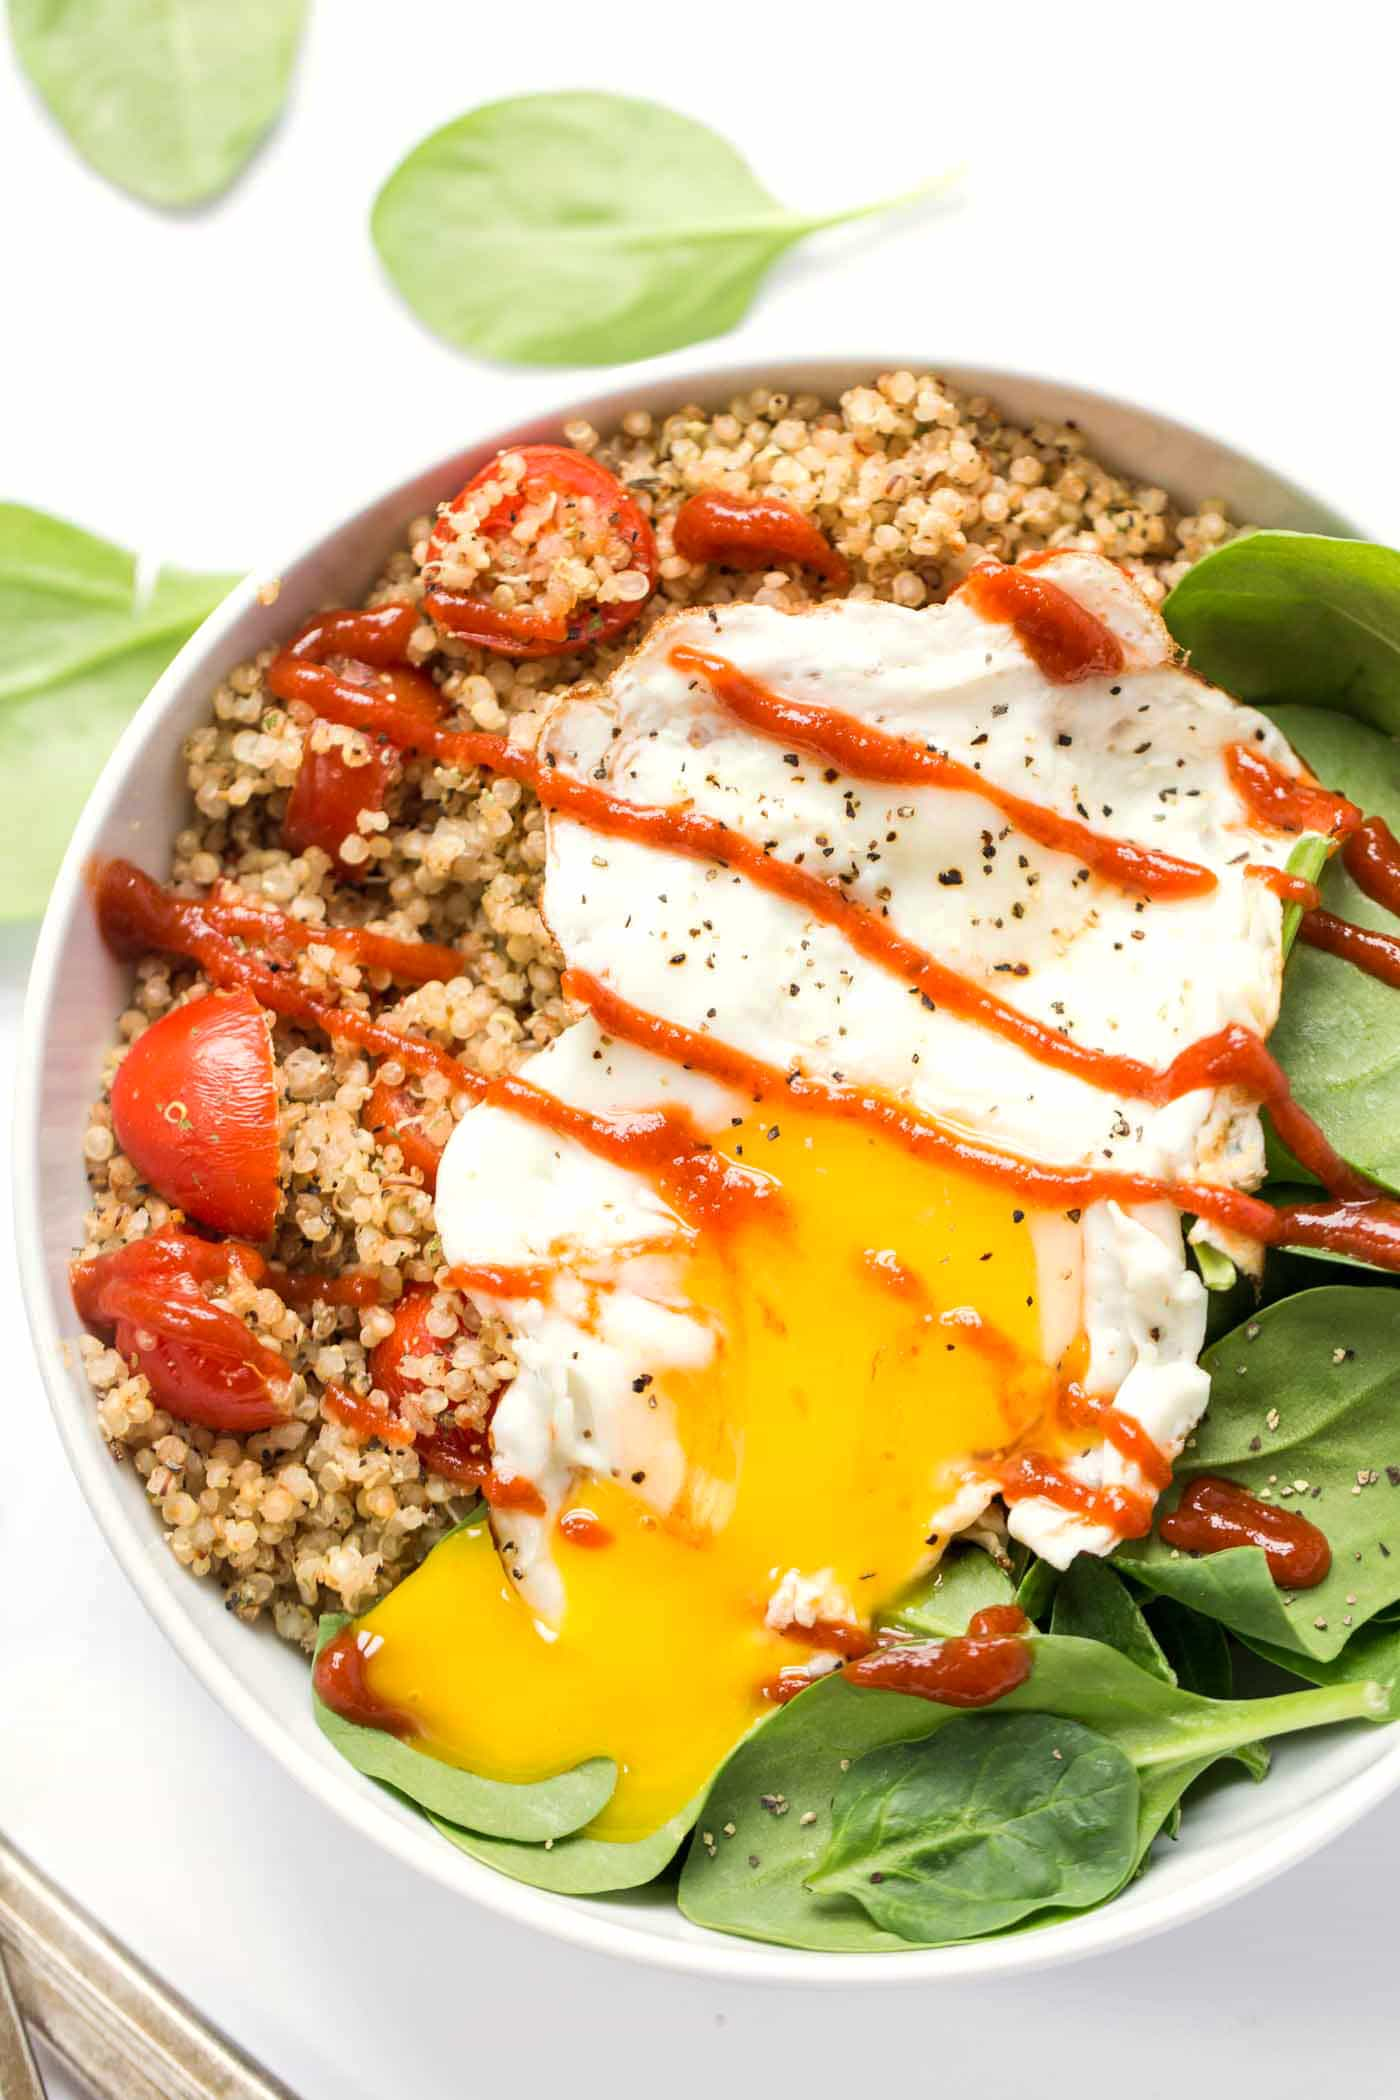 These SAVORY Quinoa Breakfast Bowls -- spinach, tomatoes and fried eggs make this protein-packed breakfast!